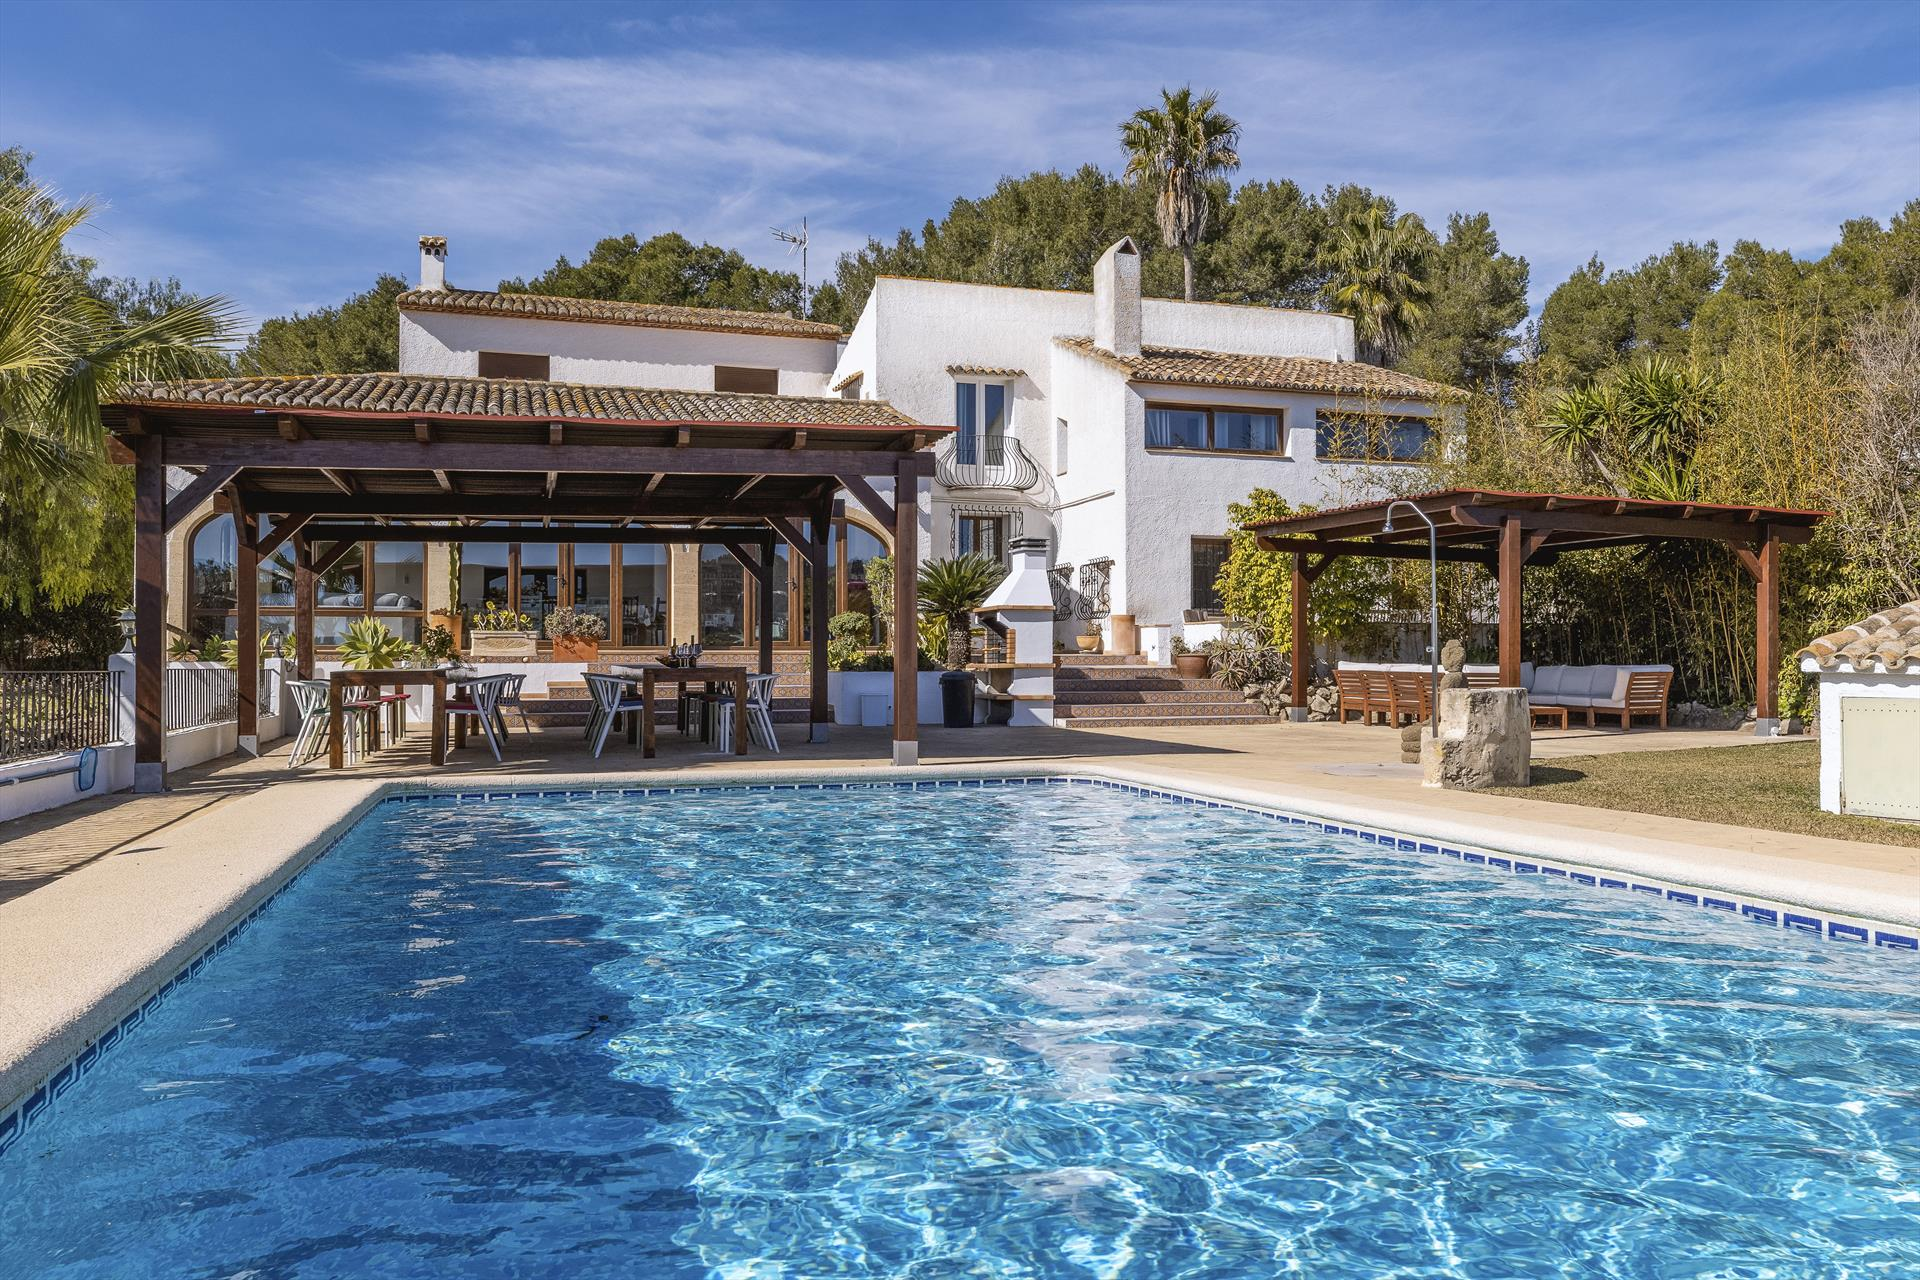 Casa Rosalia 22 pax, Large and cheerful luxury villa in Javea, on the Costa Blanca, Spain  with private pool for 22 persons.....